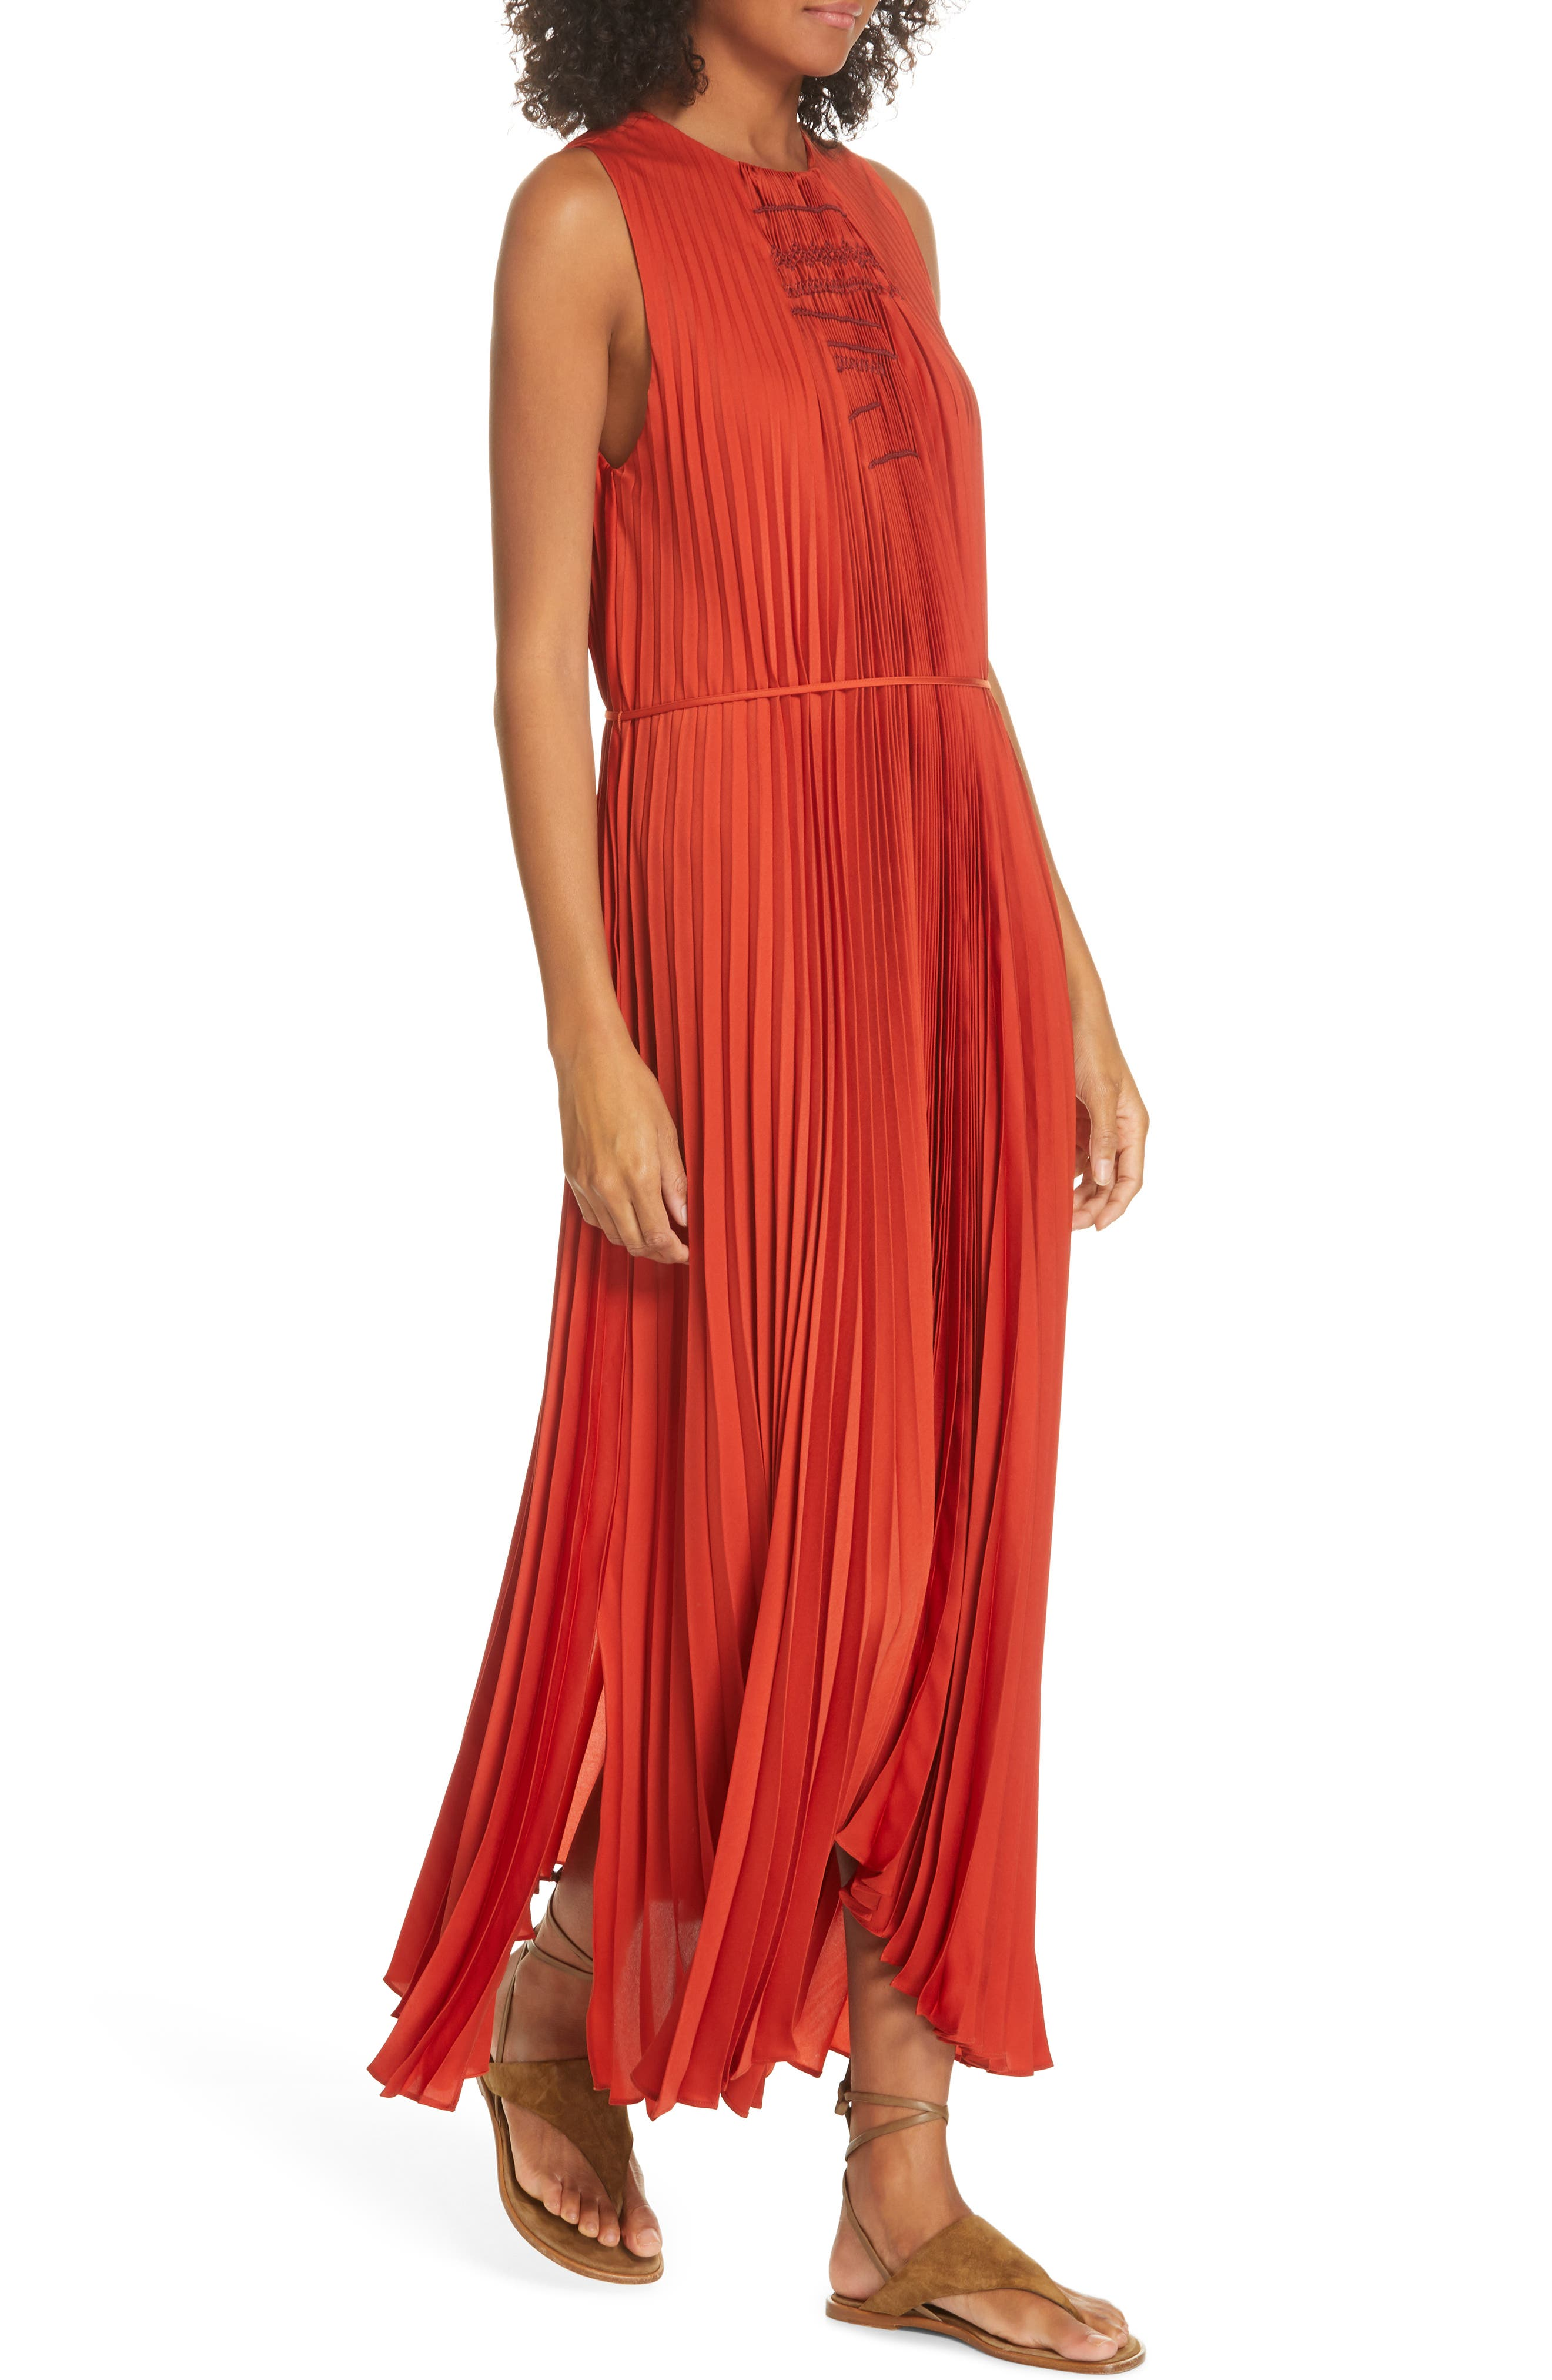 VINCE, Smocked Maxi Dress, Alternate thumbnail 5, color, ADOBE RED